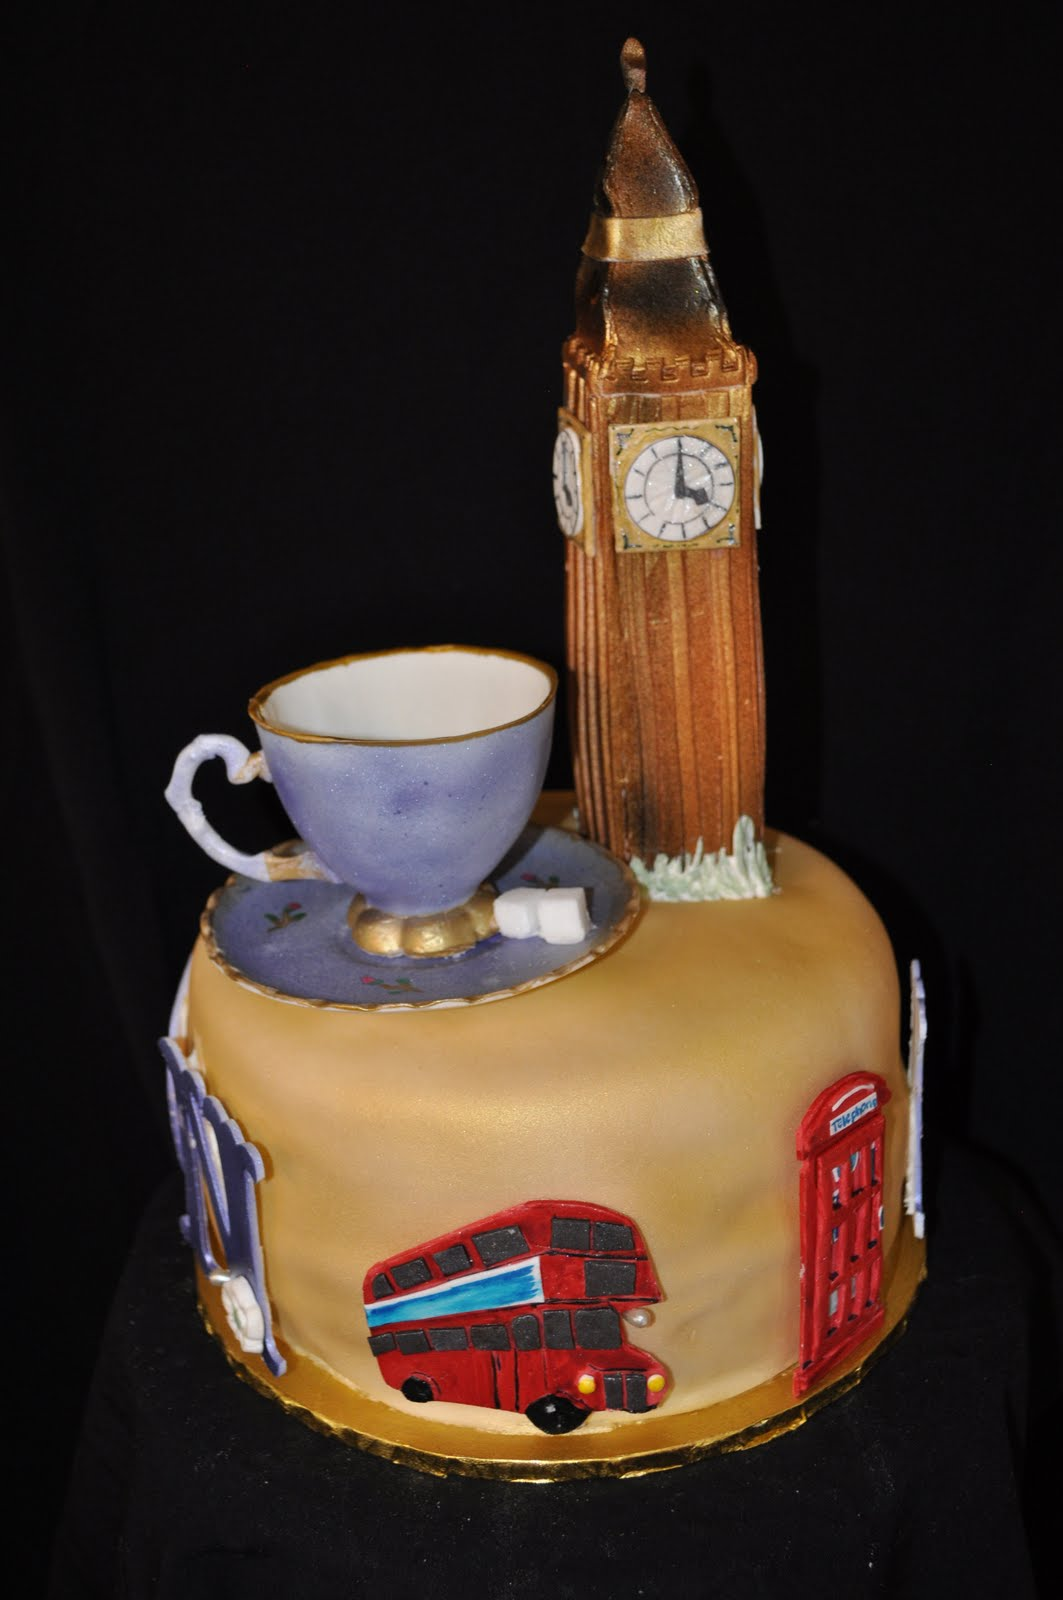 Big Ben Cake Images : WHAT A CRAZY HOBBY!!: London Cake!